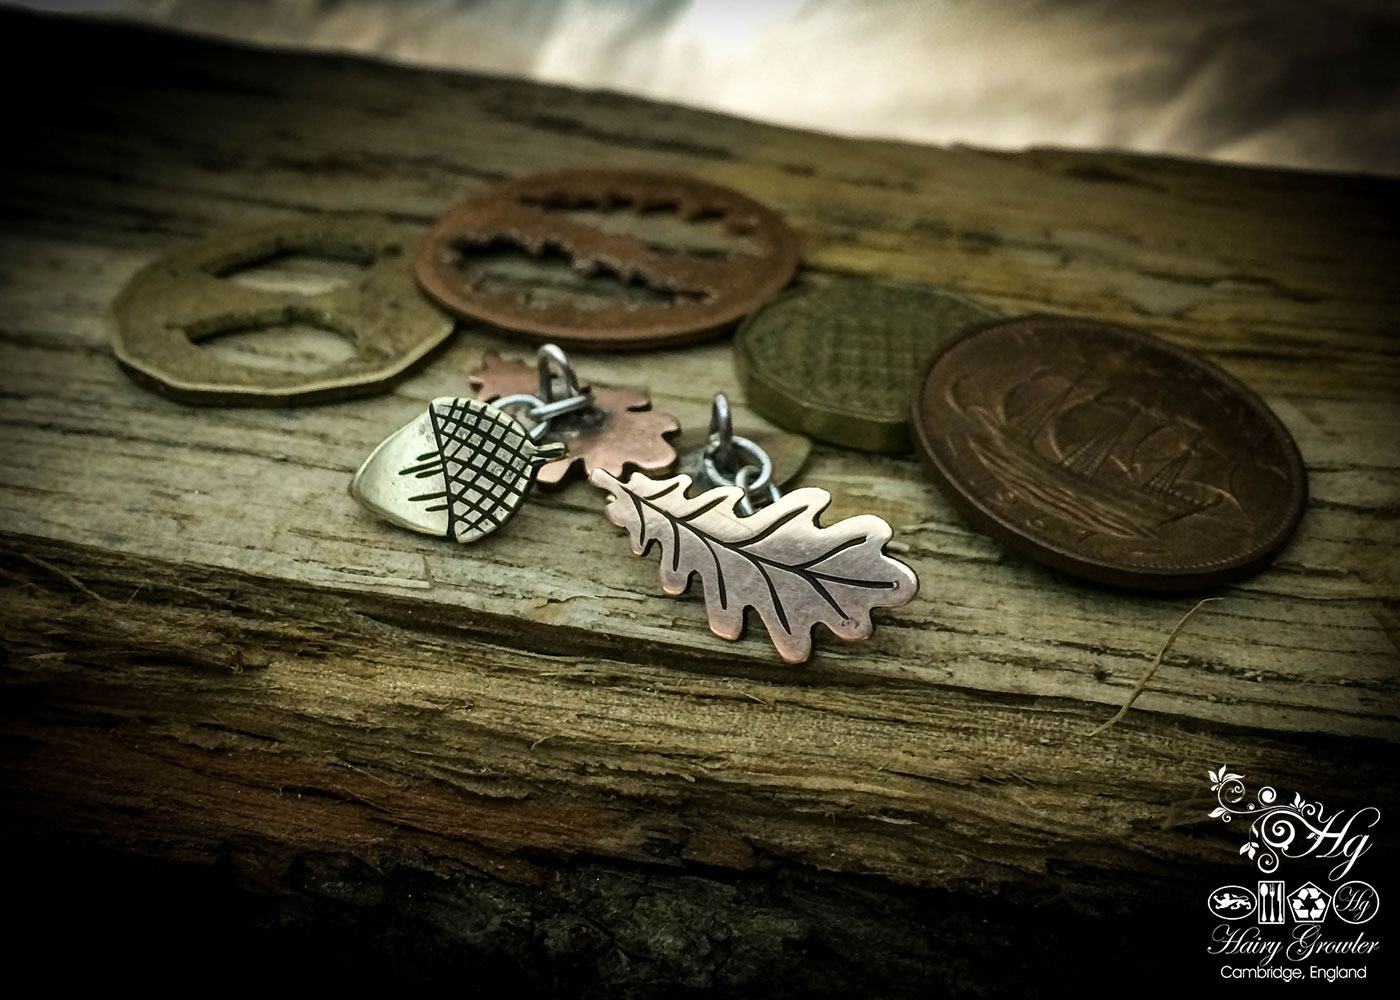 Oak-leaf-acorn cufflinks handcrafted and recycled from half penny and threepence coins